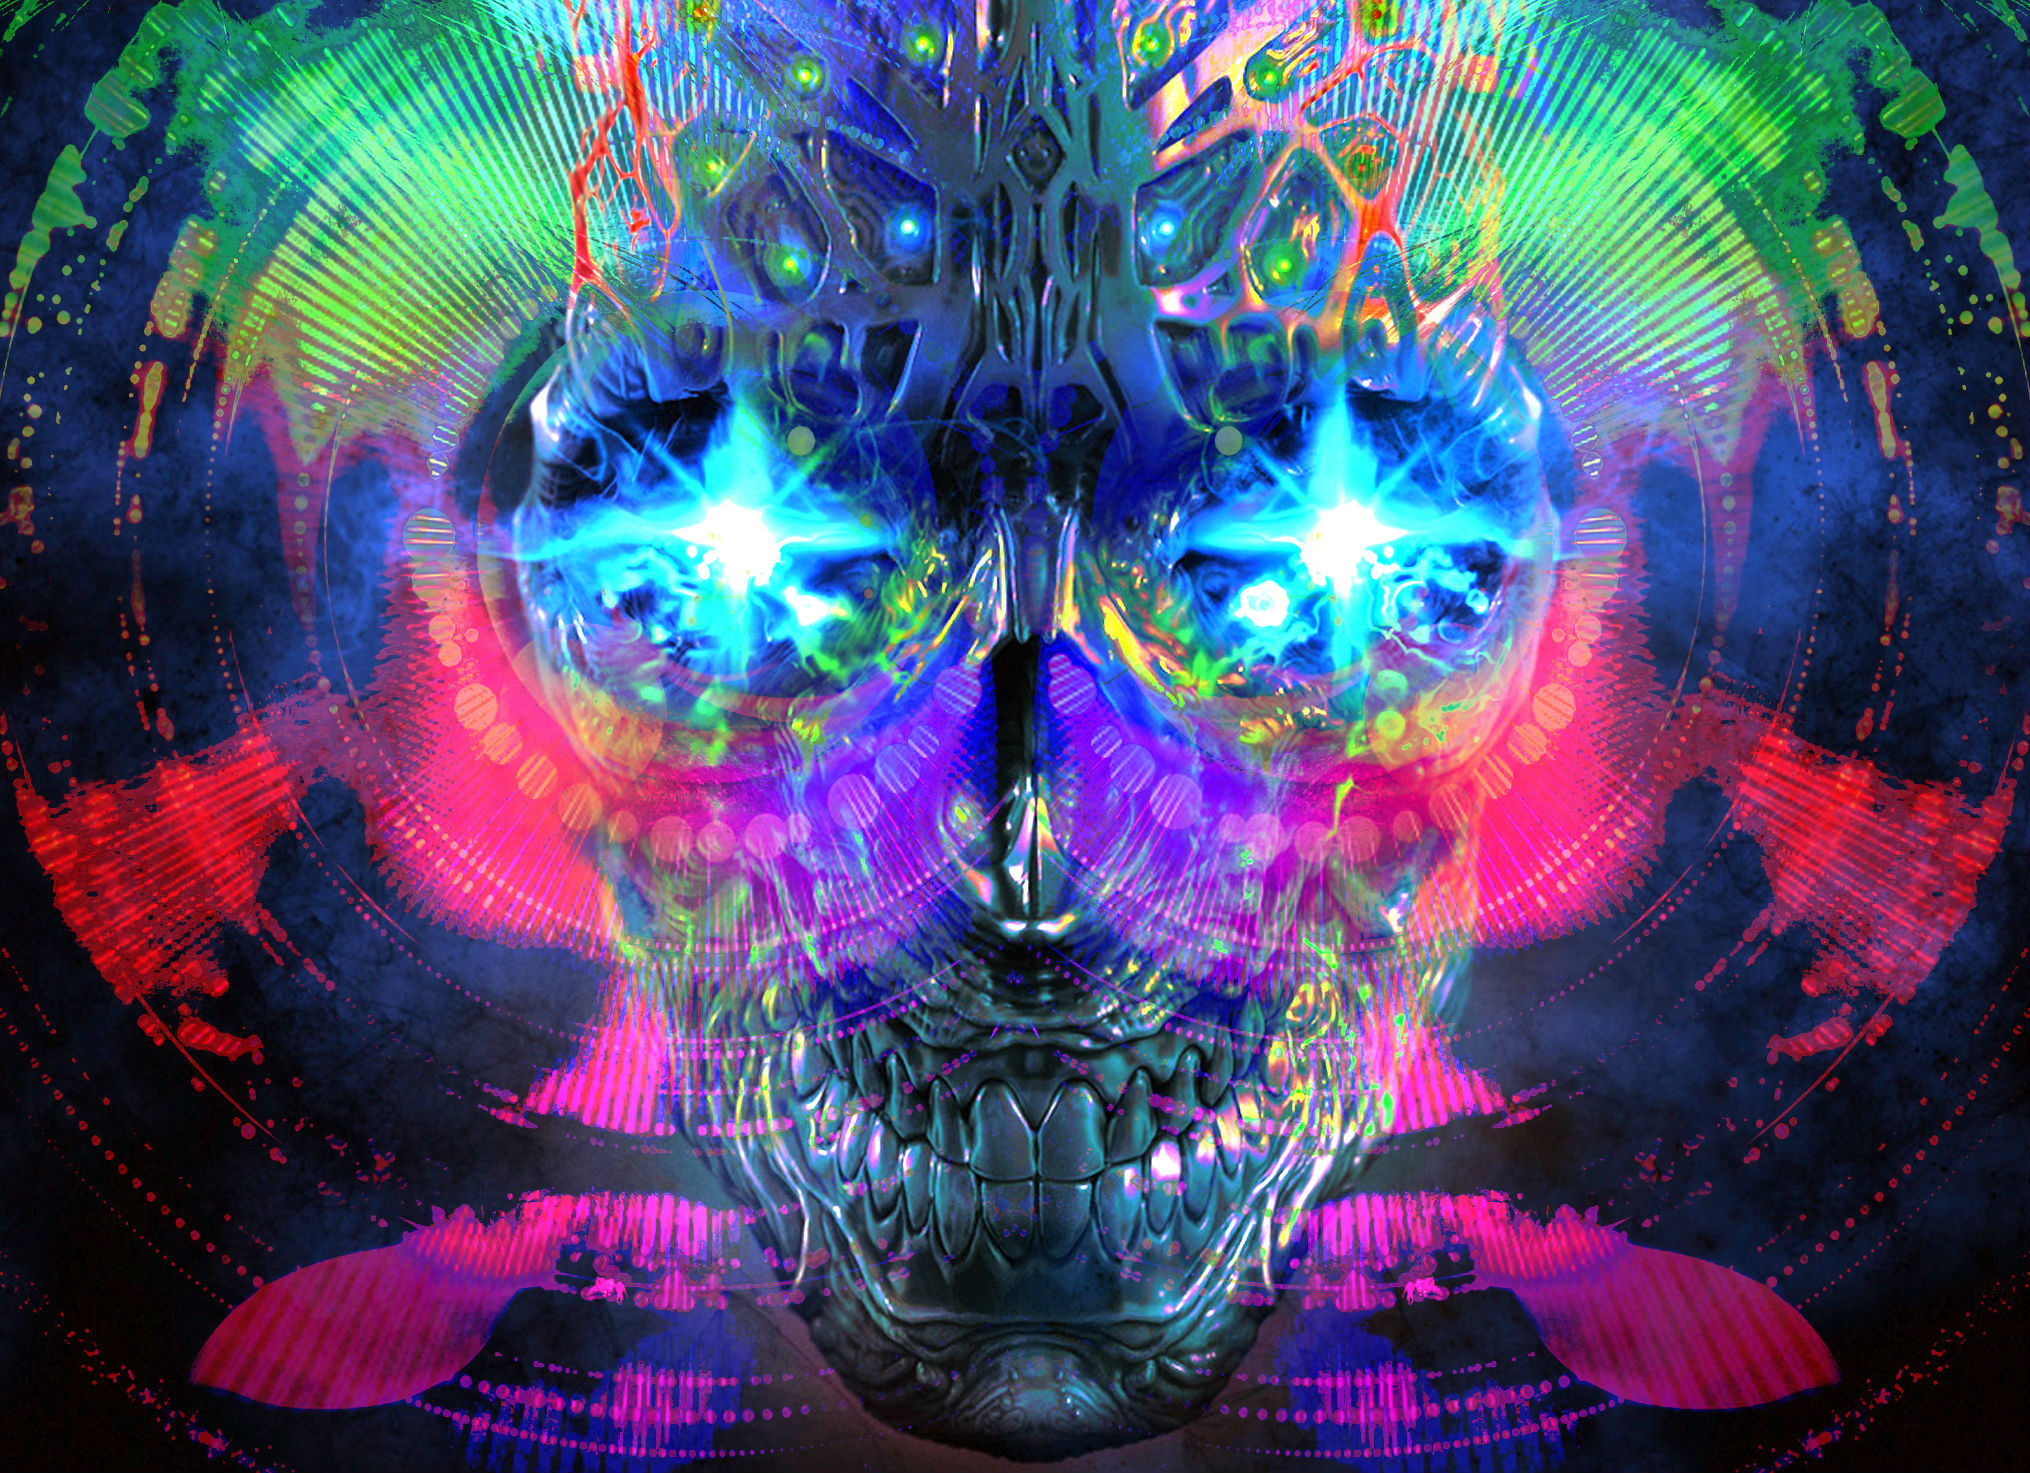 Psychedelic Computer Wallpapers Desktop Backgrounds 2030x1473 ID 2030x1473